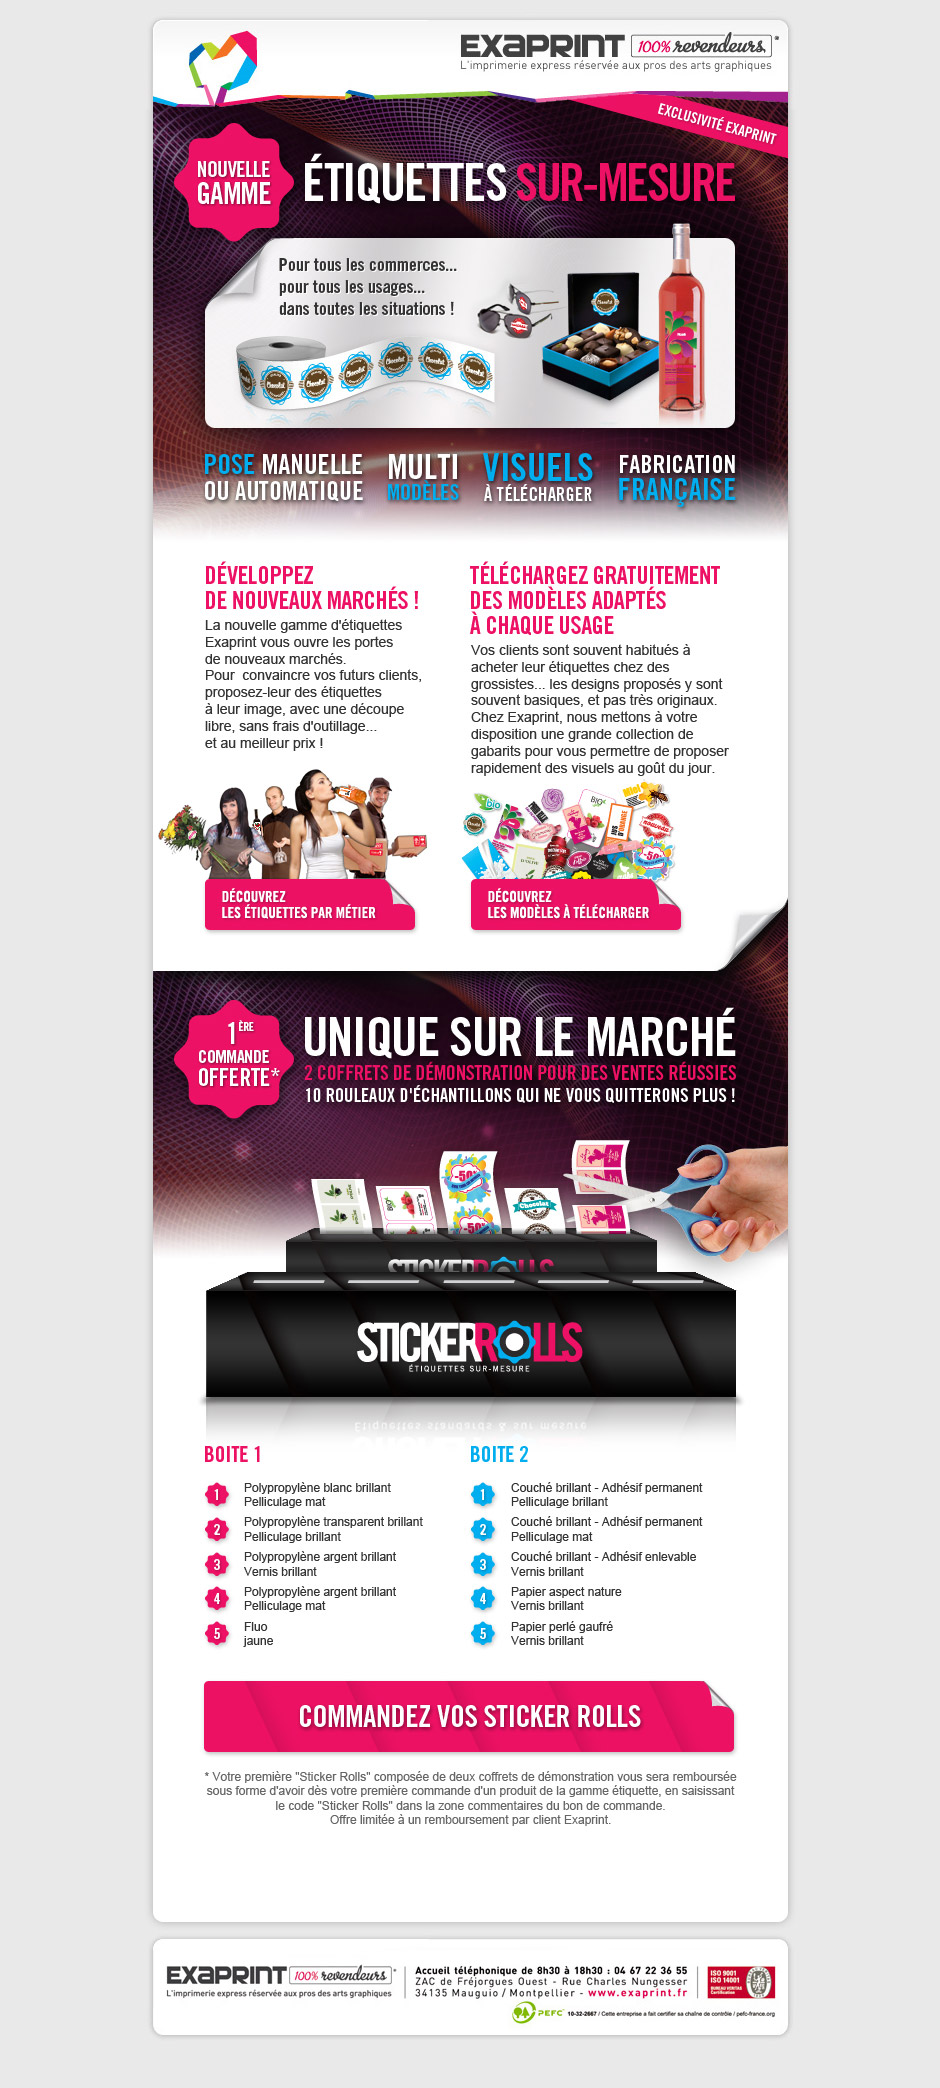 graphiste-montpellier-creation-exaprint-etiquettes-sticker-rolls-agence-communication-montpellier-caconcept-alexis-cretin-4